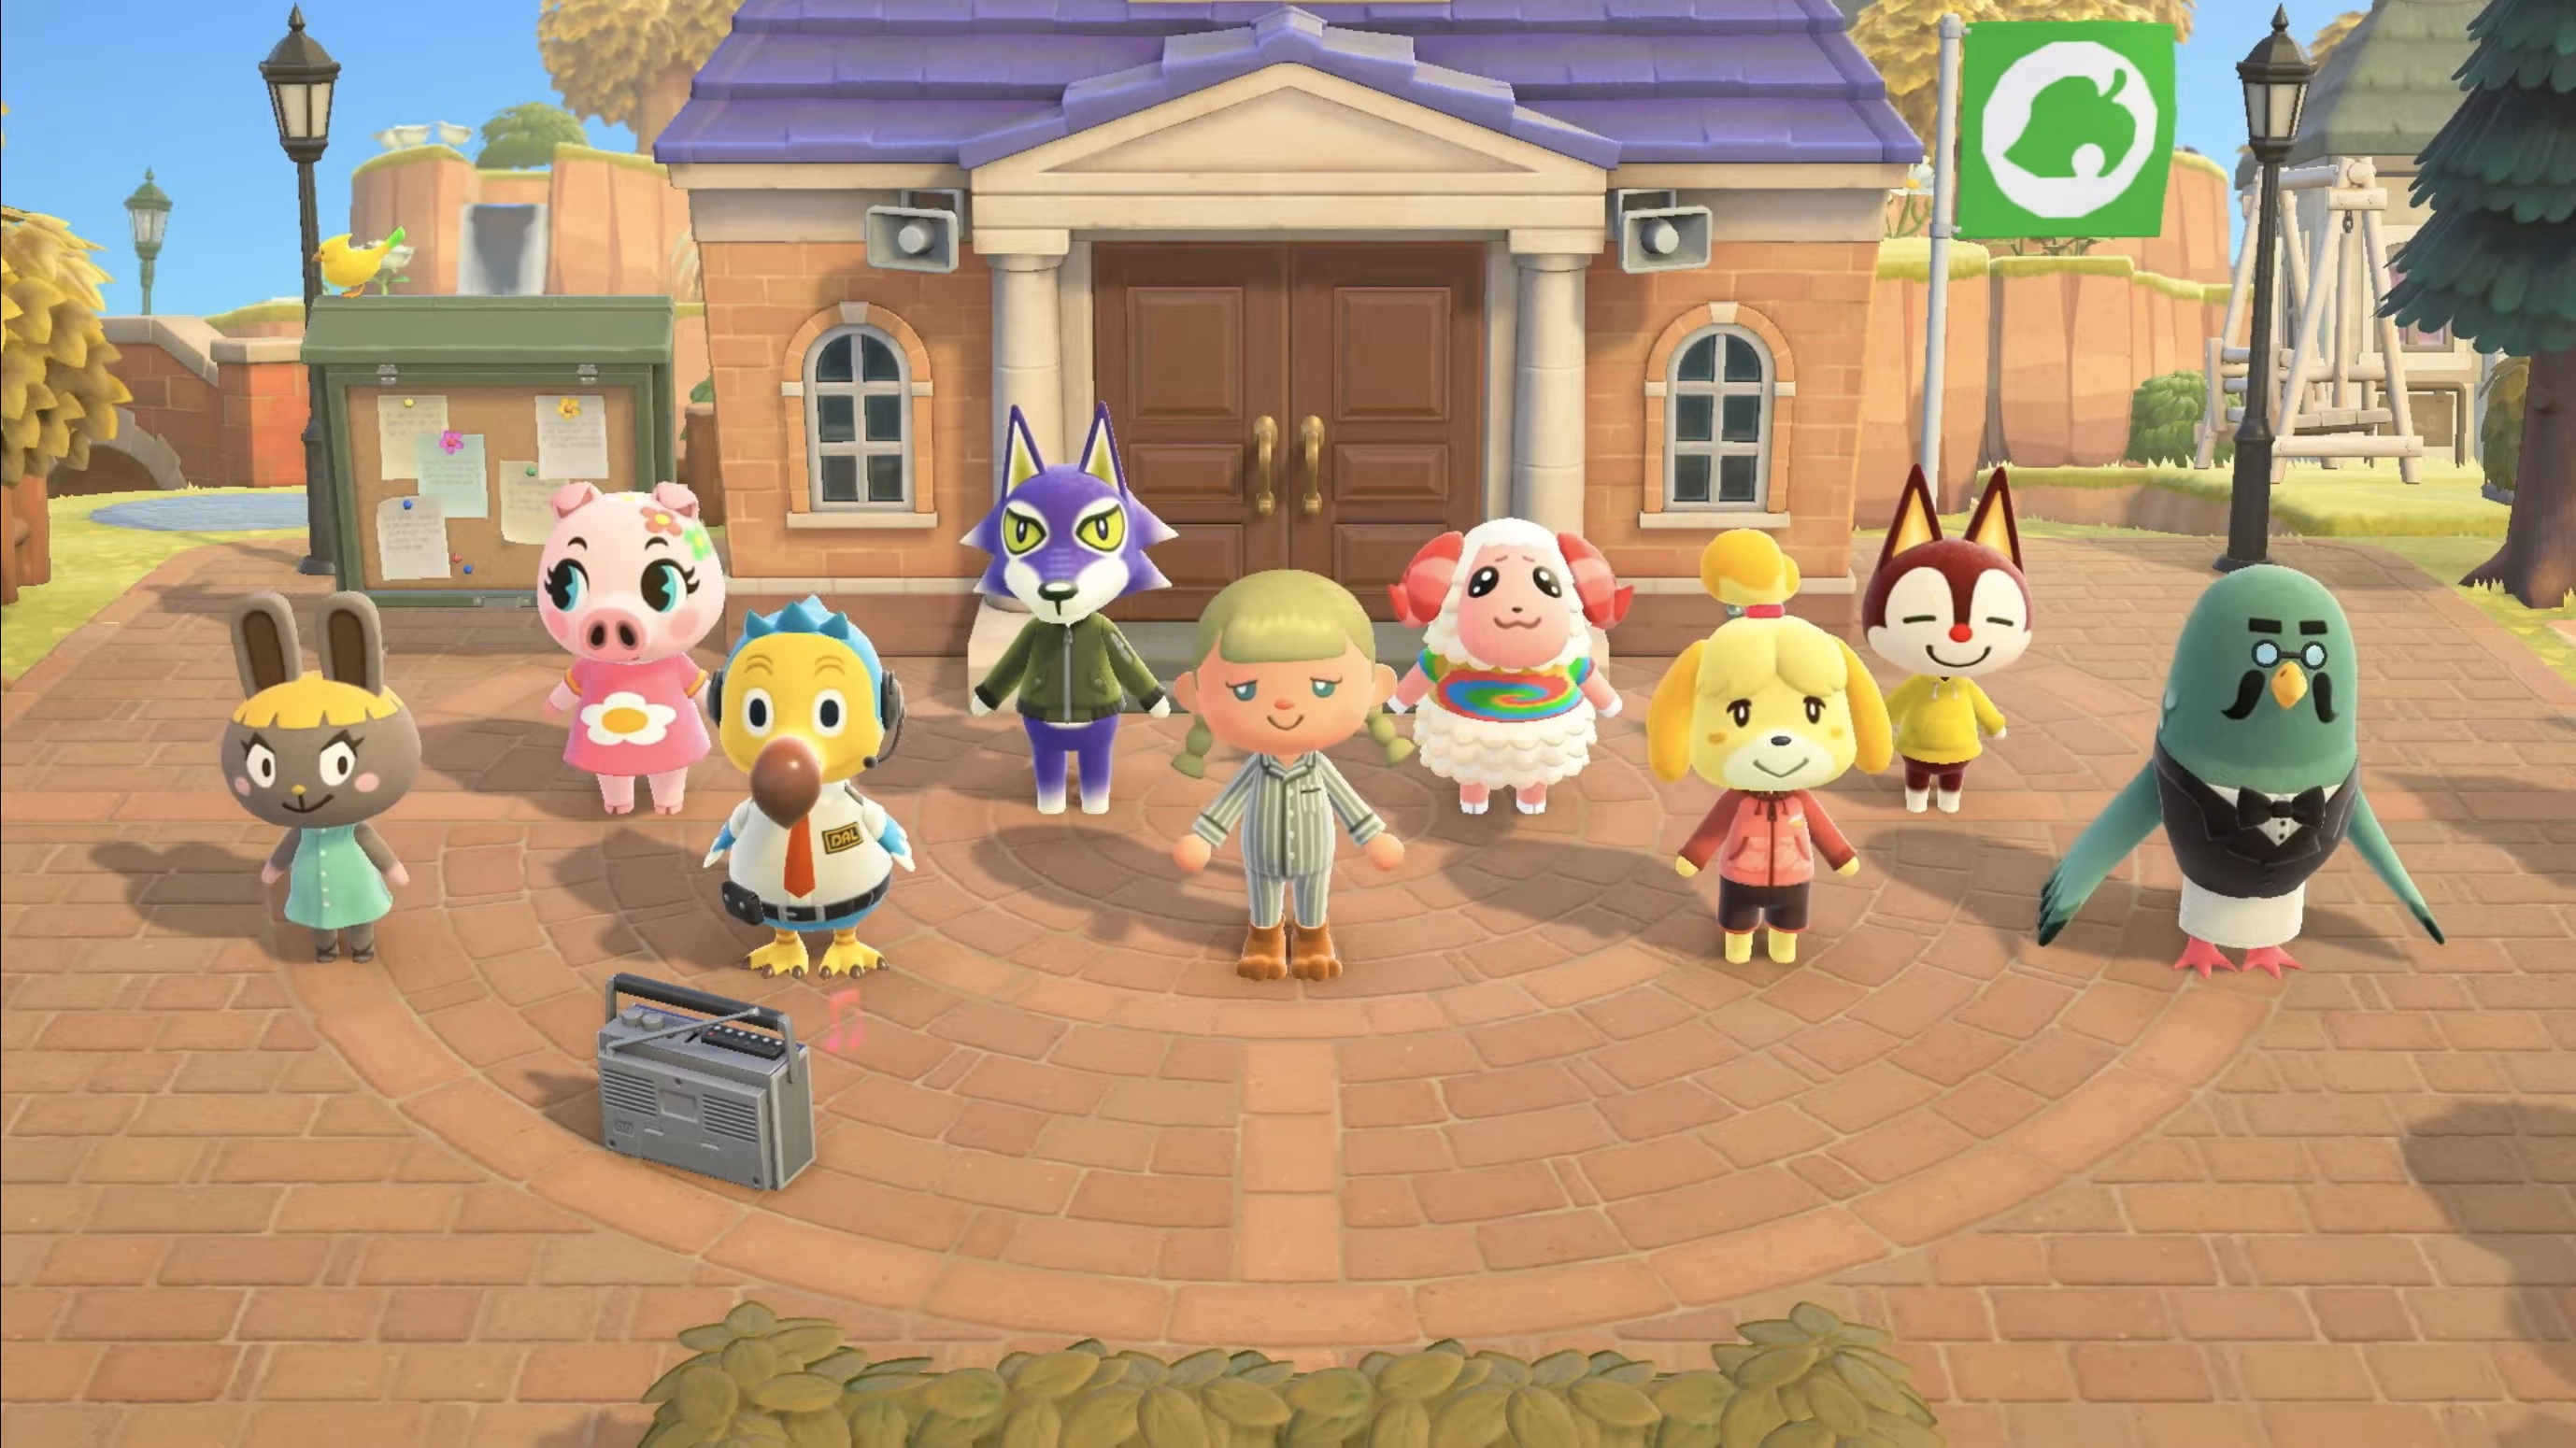 Animal Crossing characters doing yoga and other calisthenic exercises in the game